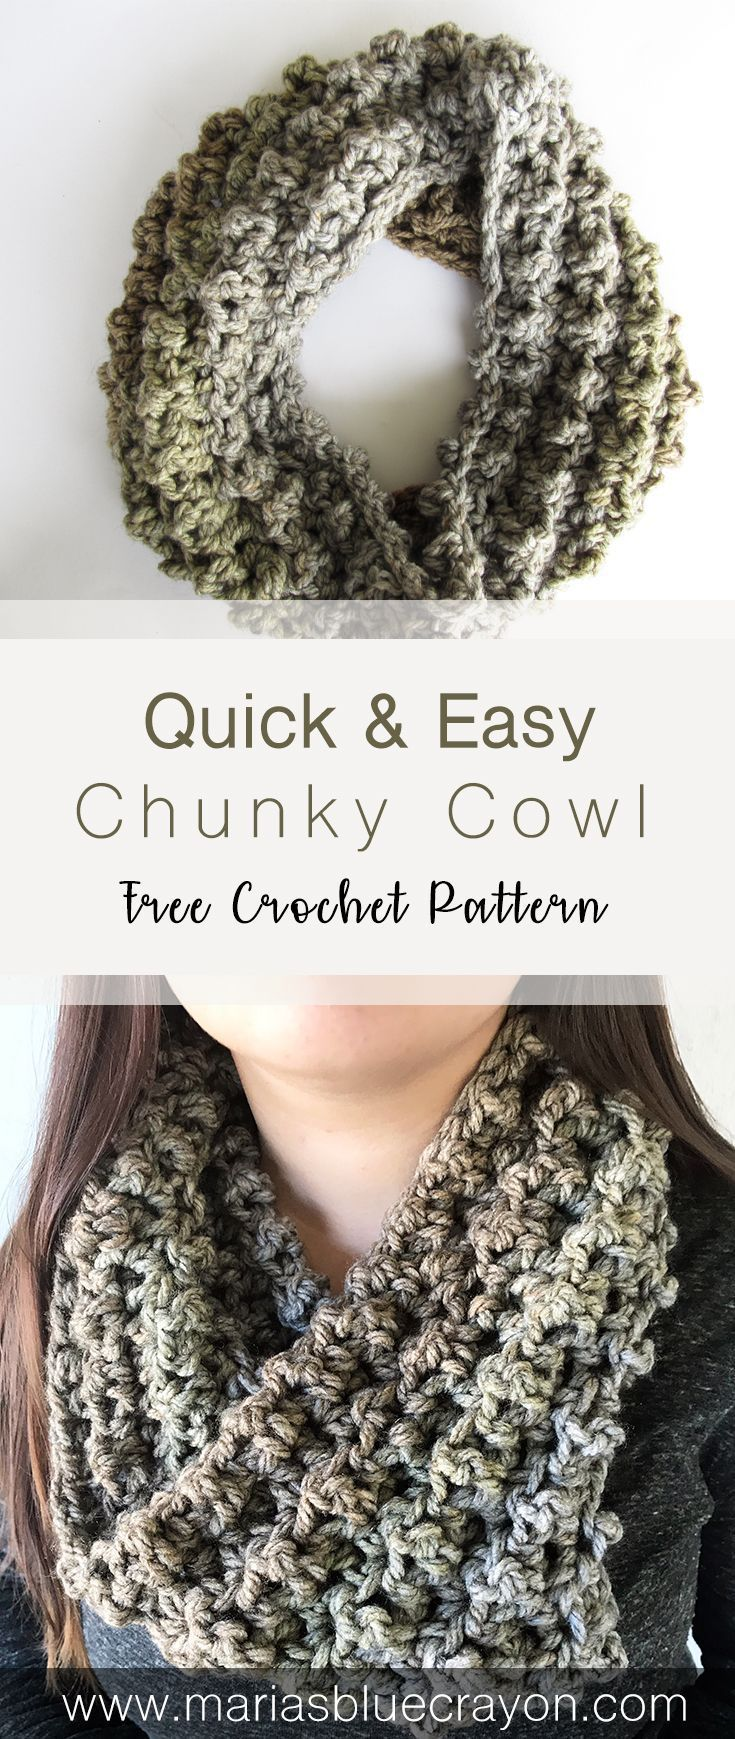 Easy & Quick Crochet Chunky Cowl | Free Crochet Pattern | Beginner ...